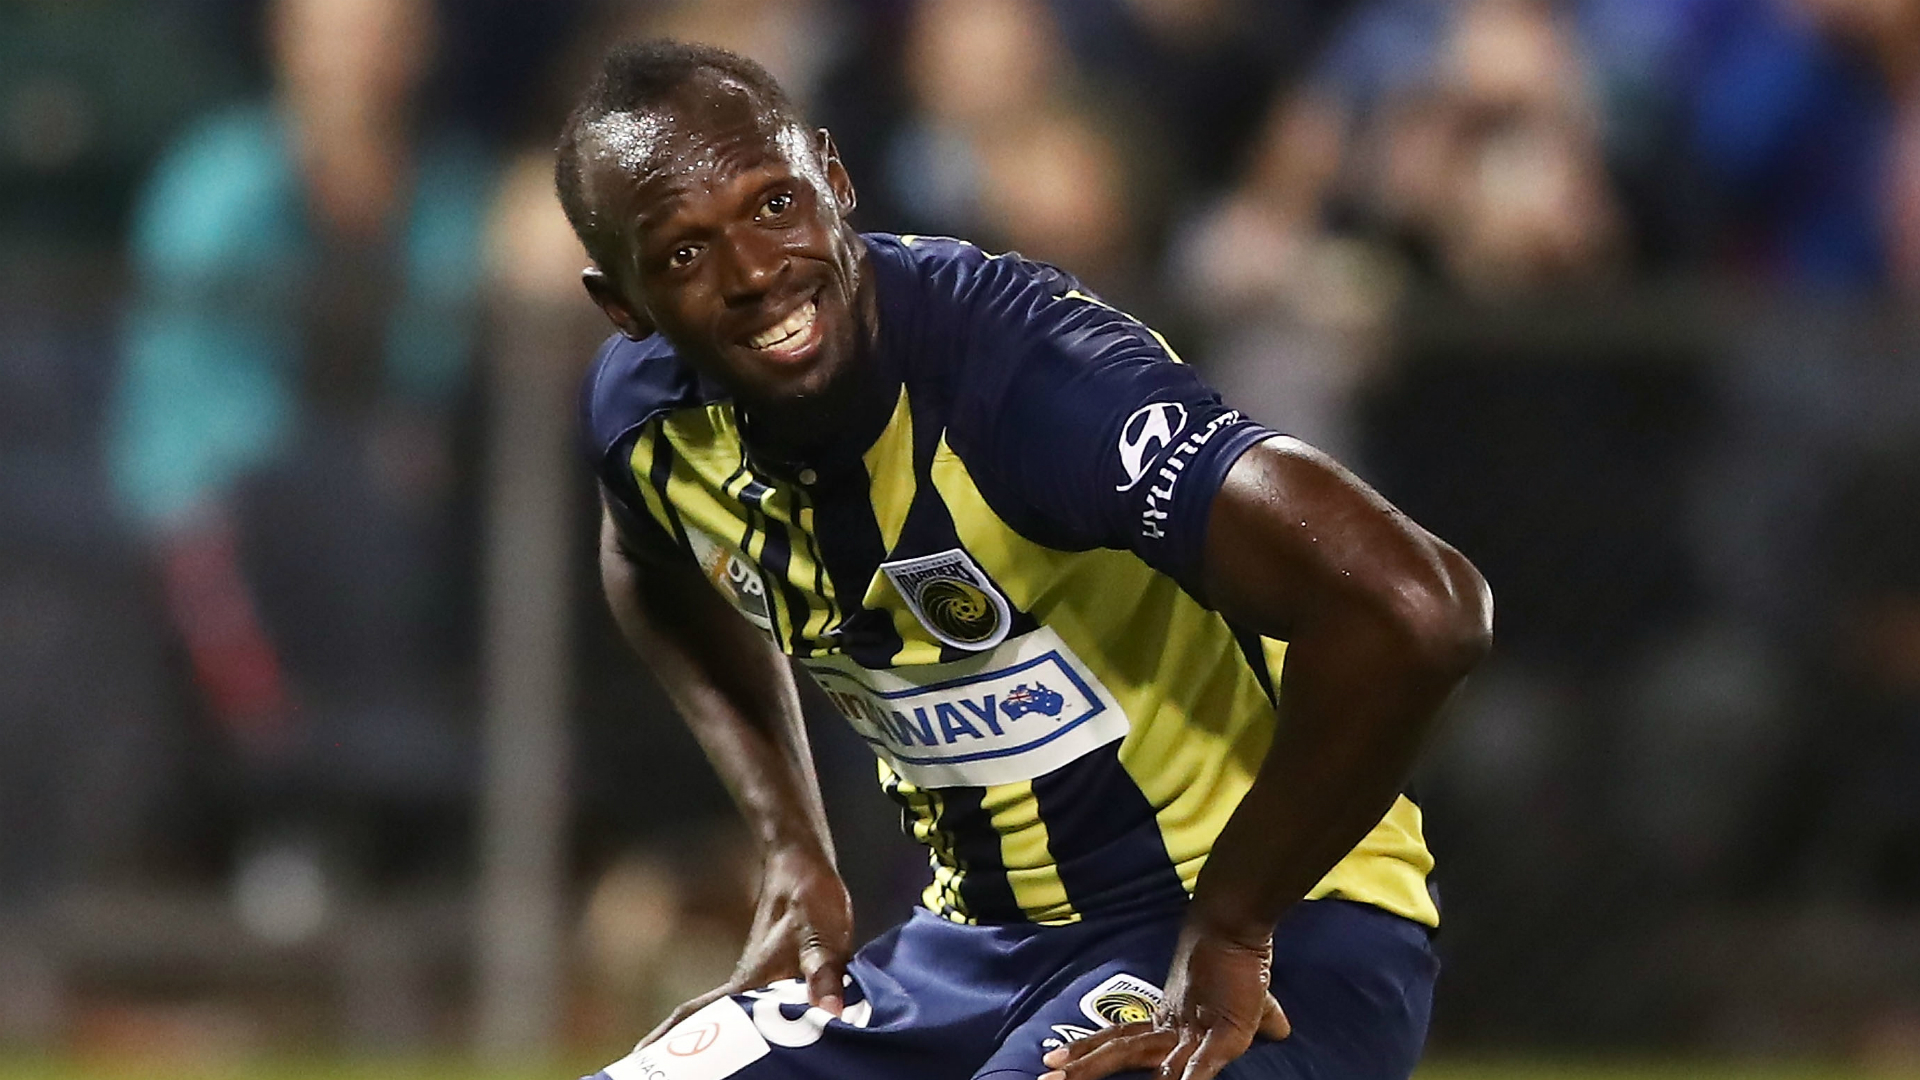 Usain Bolt offered 2-year contract by Champions League-aspiring club